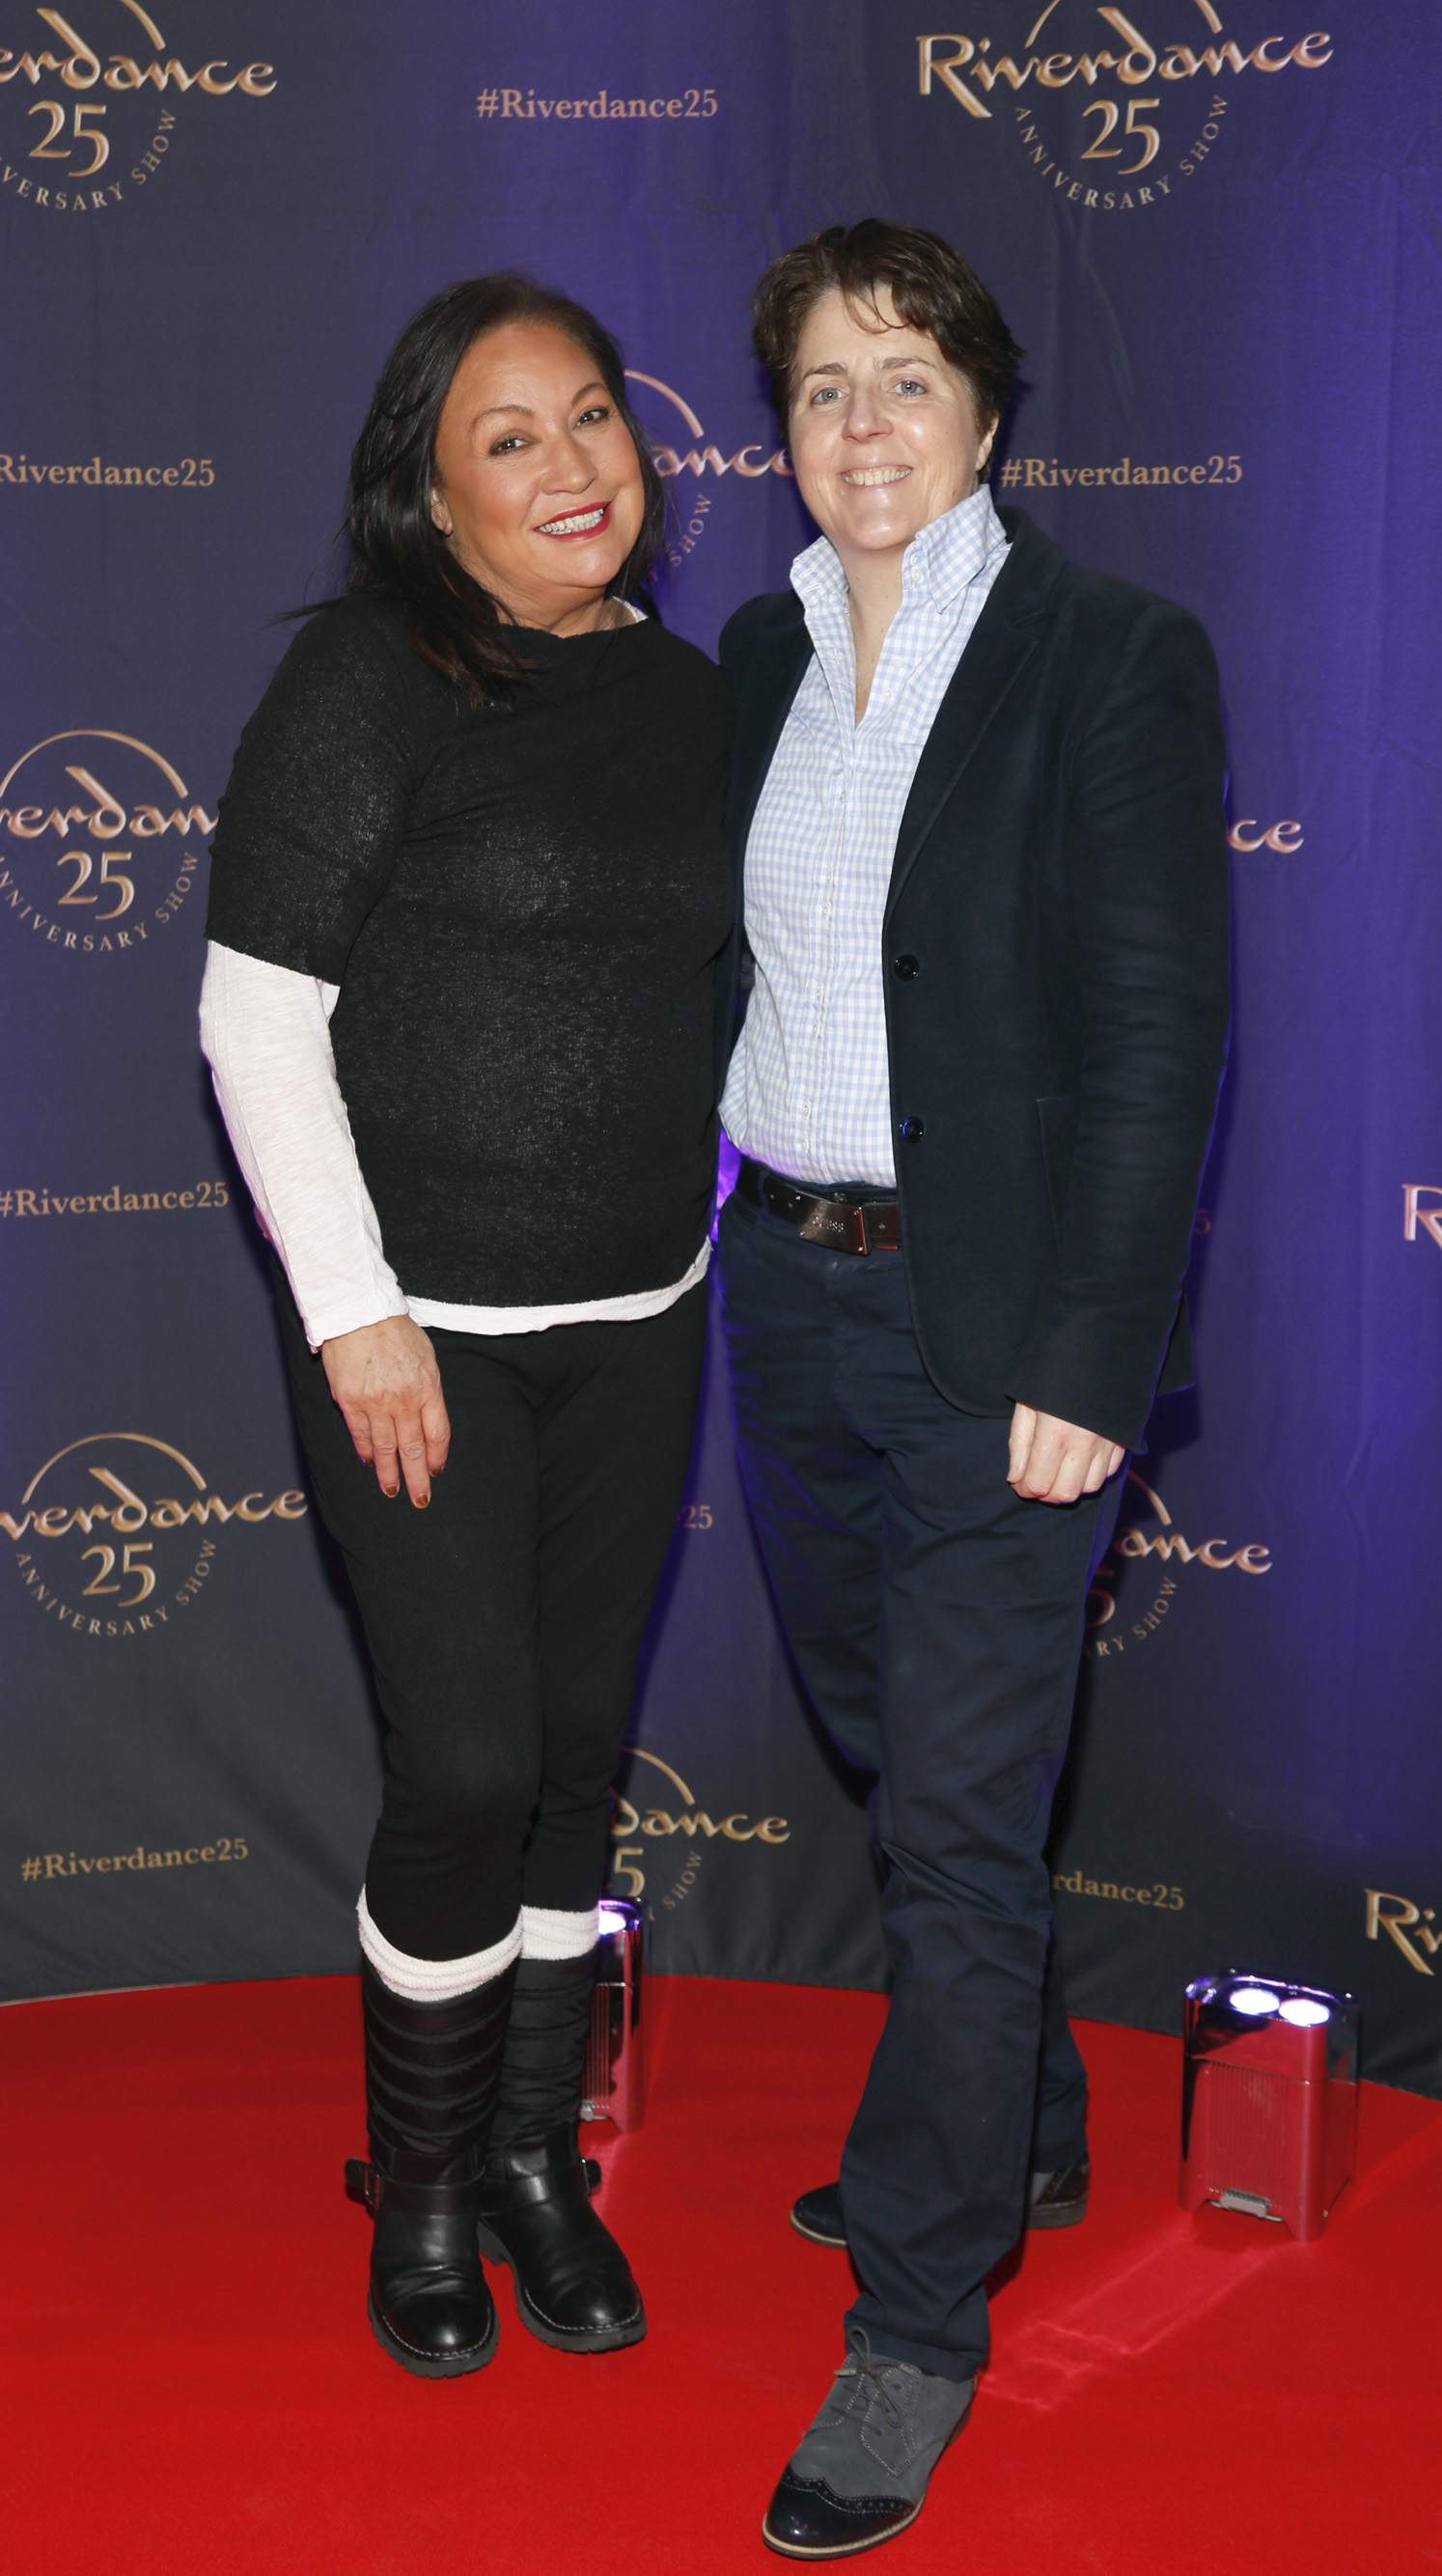 Norah Casey and Val Quinn at the historic gala performance of Riverdance 25th Anniversary show at 3Arena Dublin exactly 25 years to the day that Riverdance was first performed at the Point Depot.  Photo: Kieran Harnett